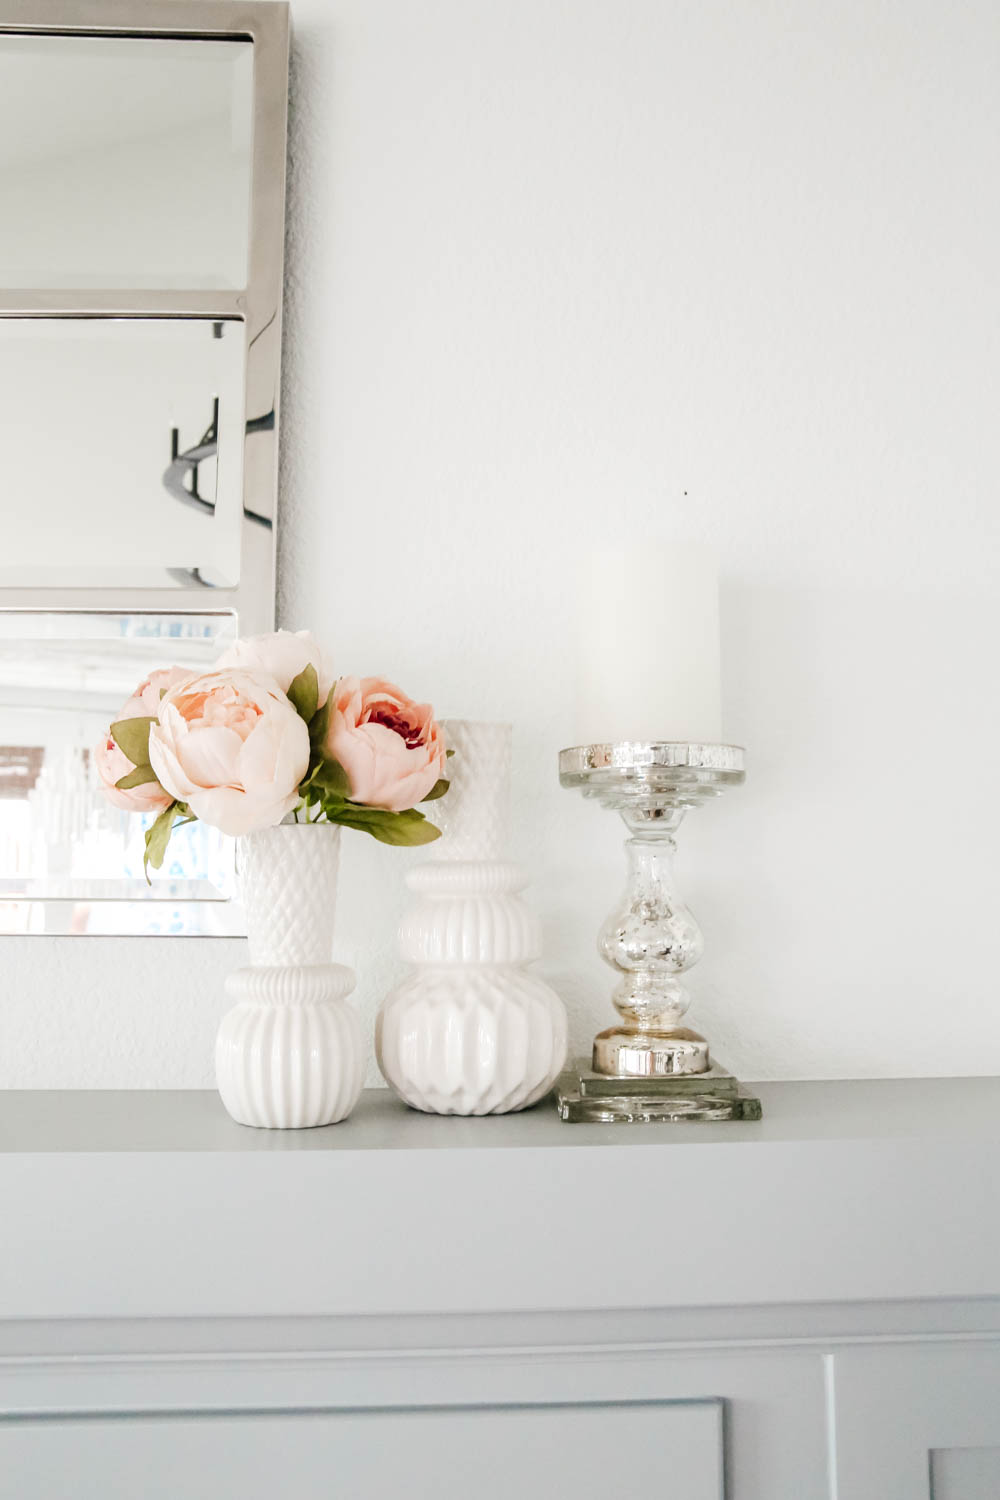 Fireplace decor details. White vases, mercury glass candlestick, peonies flowers. #livingroominspo #hometour #springdecor #ABlissfulNest